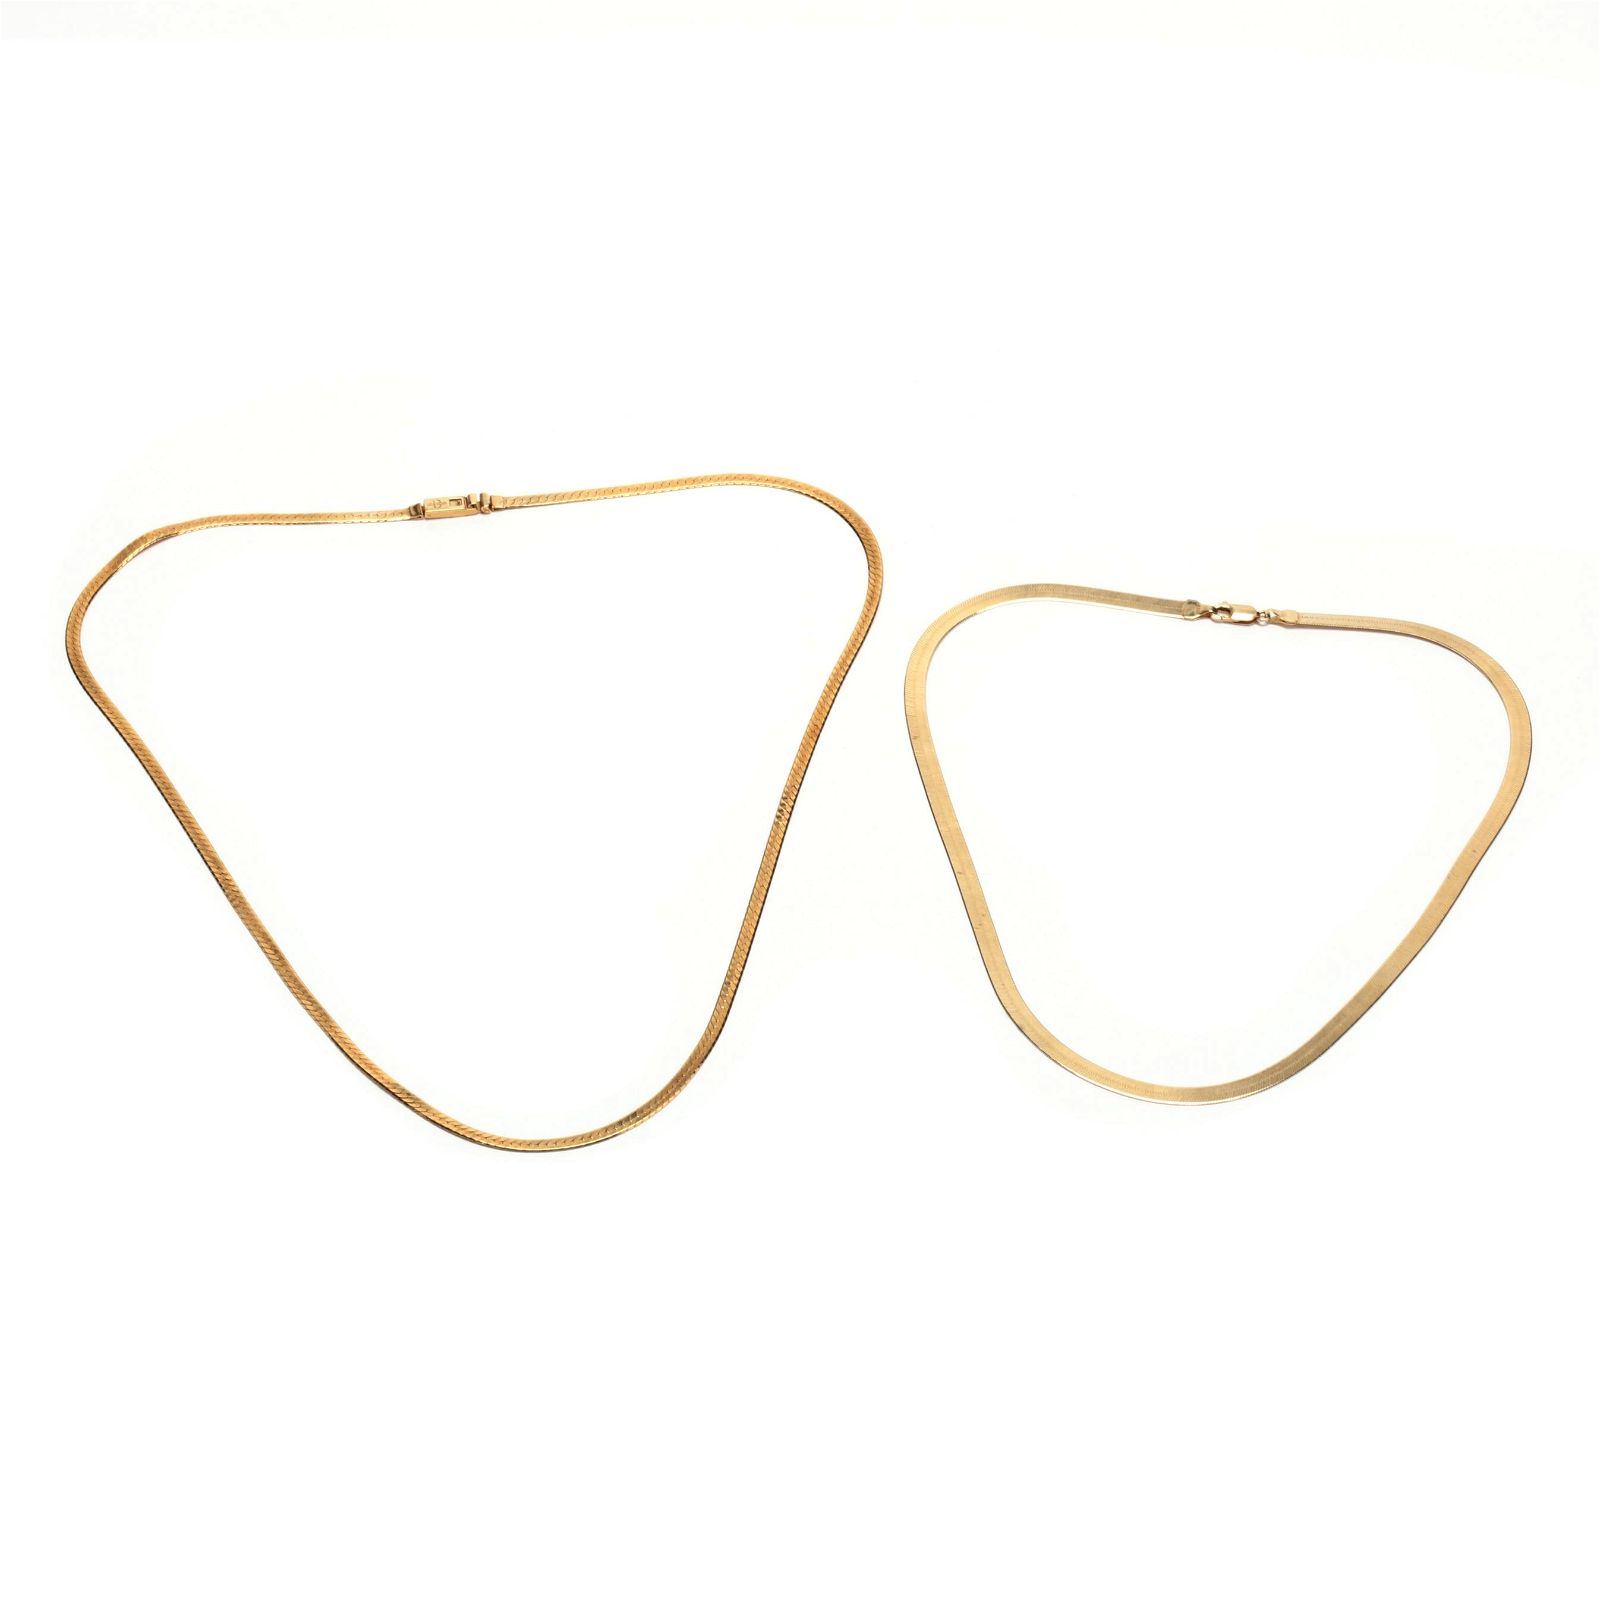 Two 14KT Gold Chain Necklaces